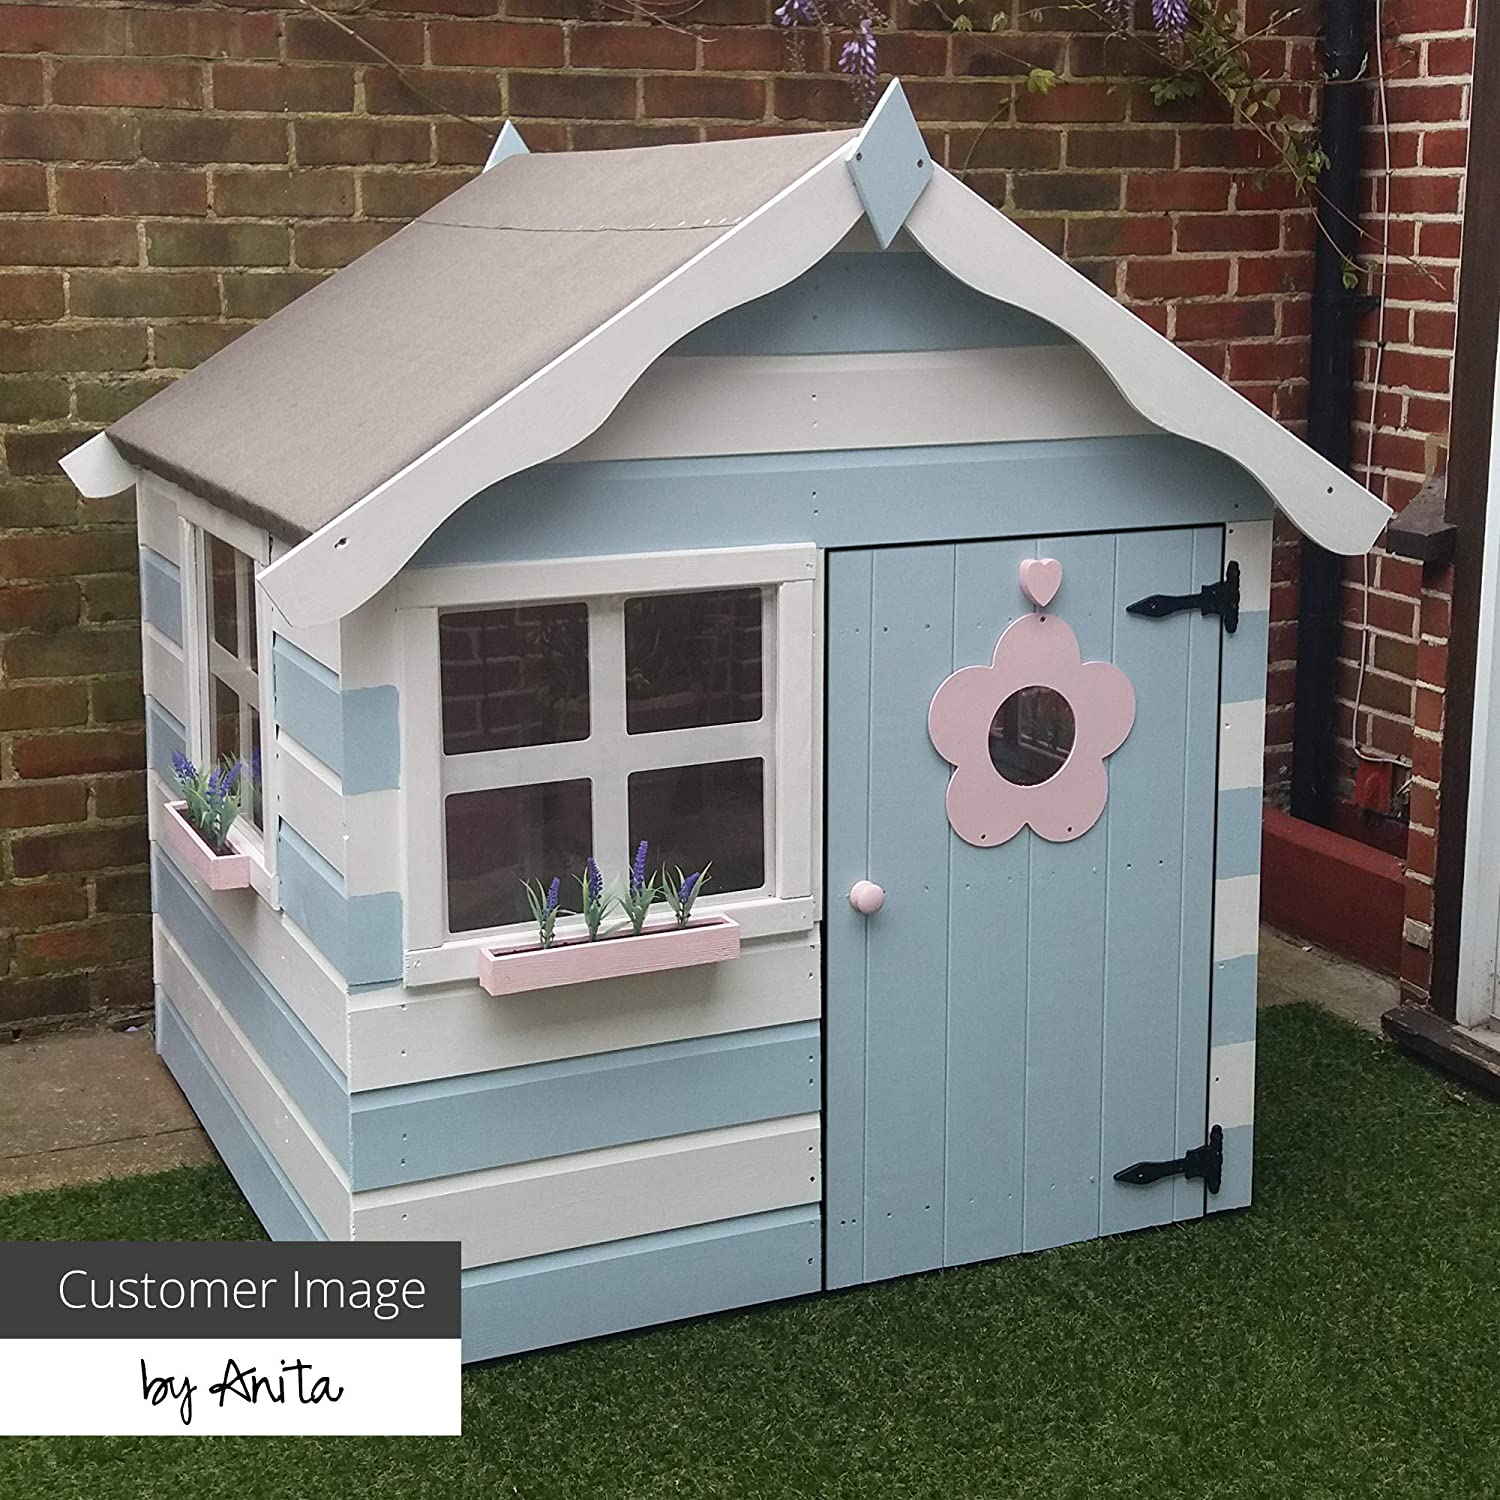 3-5 Day Delivery Felt and Floor 1878 4x4 Wooden Garden Playhouse for kids Safety Styrene Windows WALTONS EST Shiplap Construction 4 x 4 // 4Ft x 4Ft dip treated with 10 year Anti Rot Guarantee Includes Apex Roof